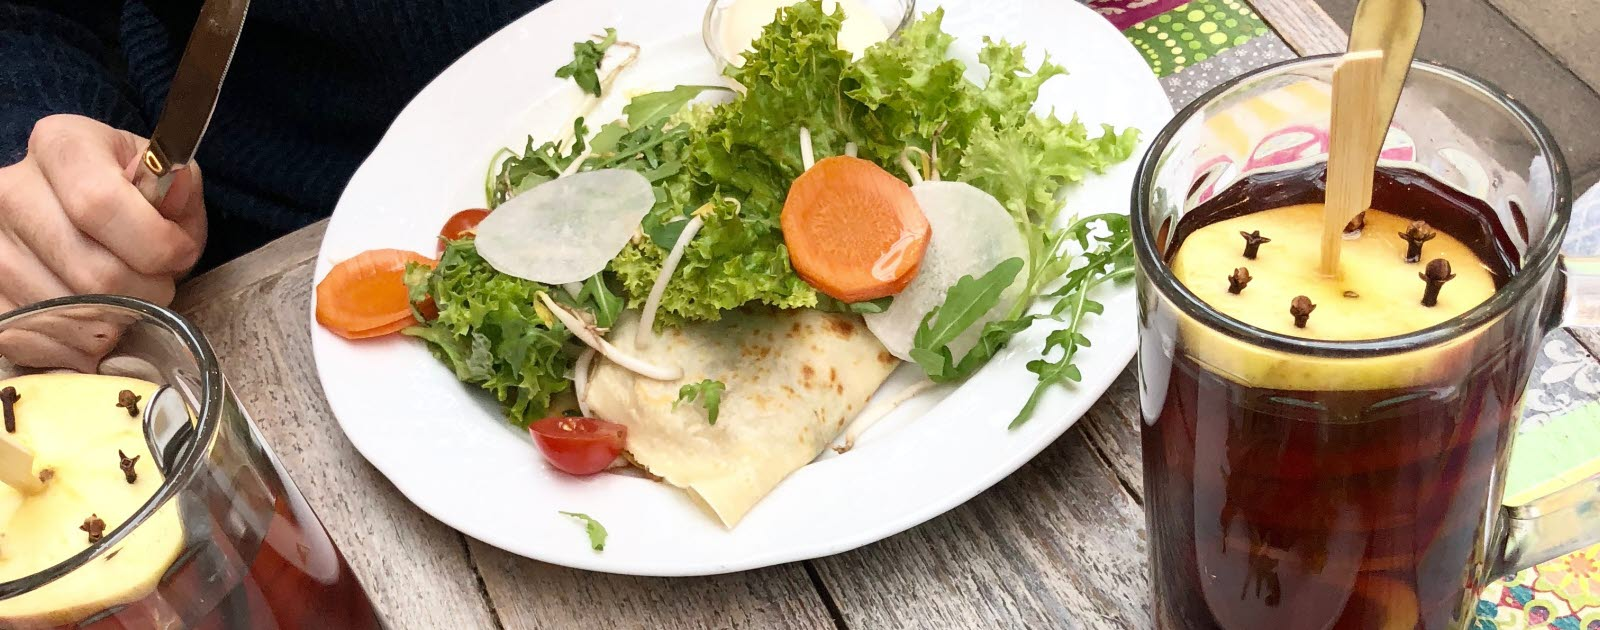 Crepes till lunch i Warszawa